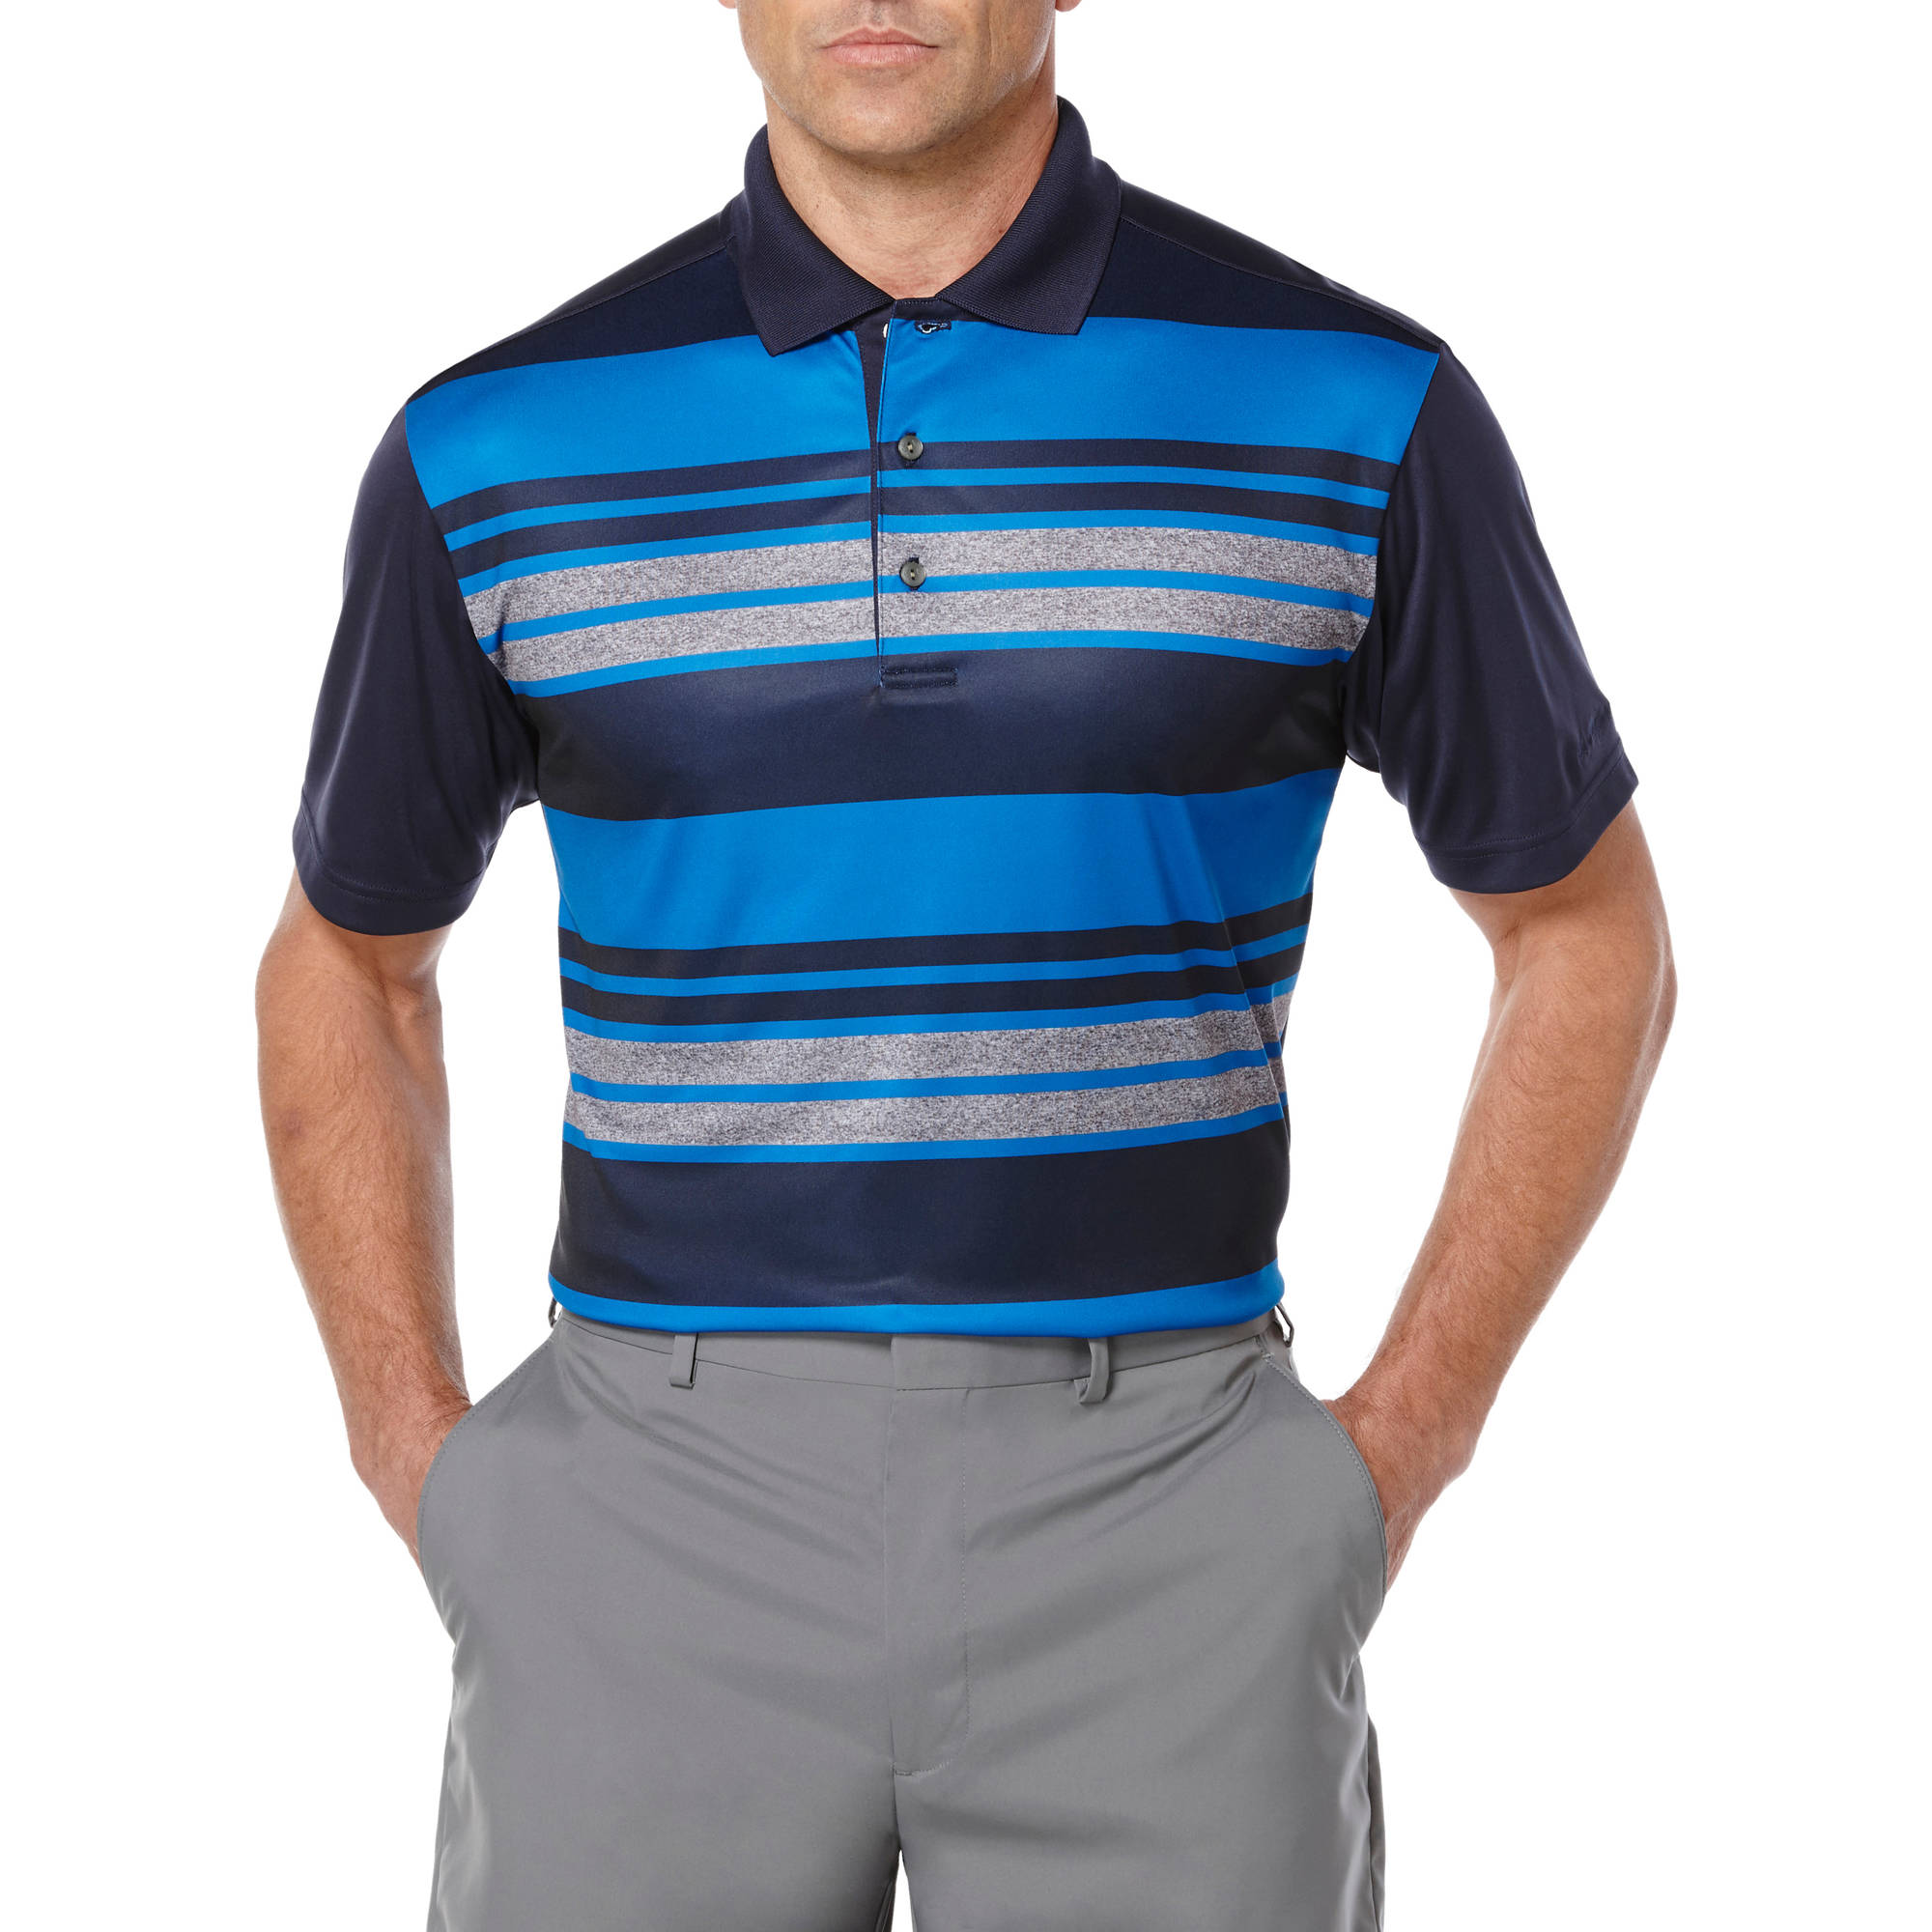 Ben Hogan Performance Men's Heather Stripe Polo Shirt